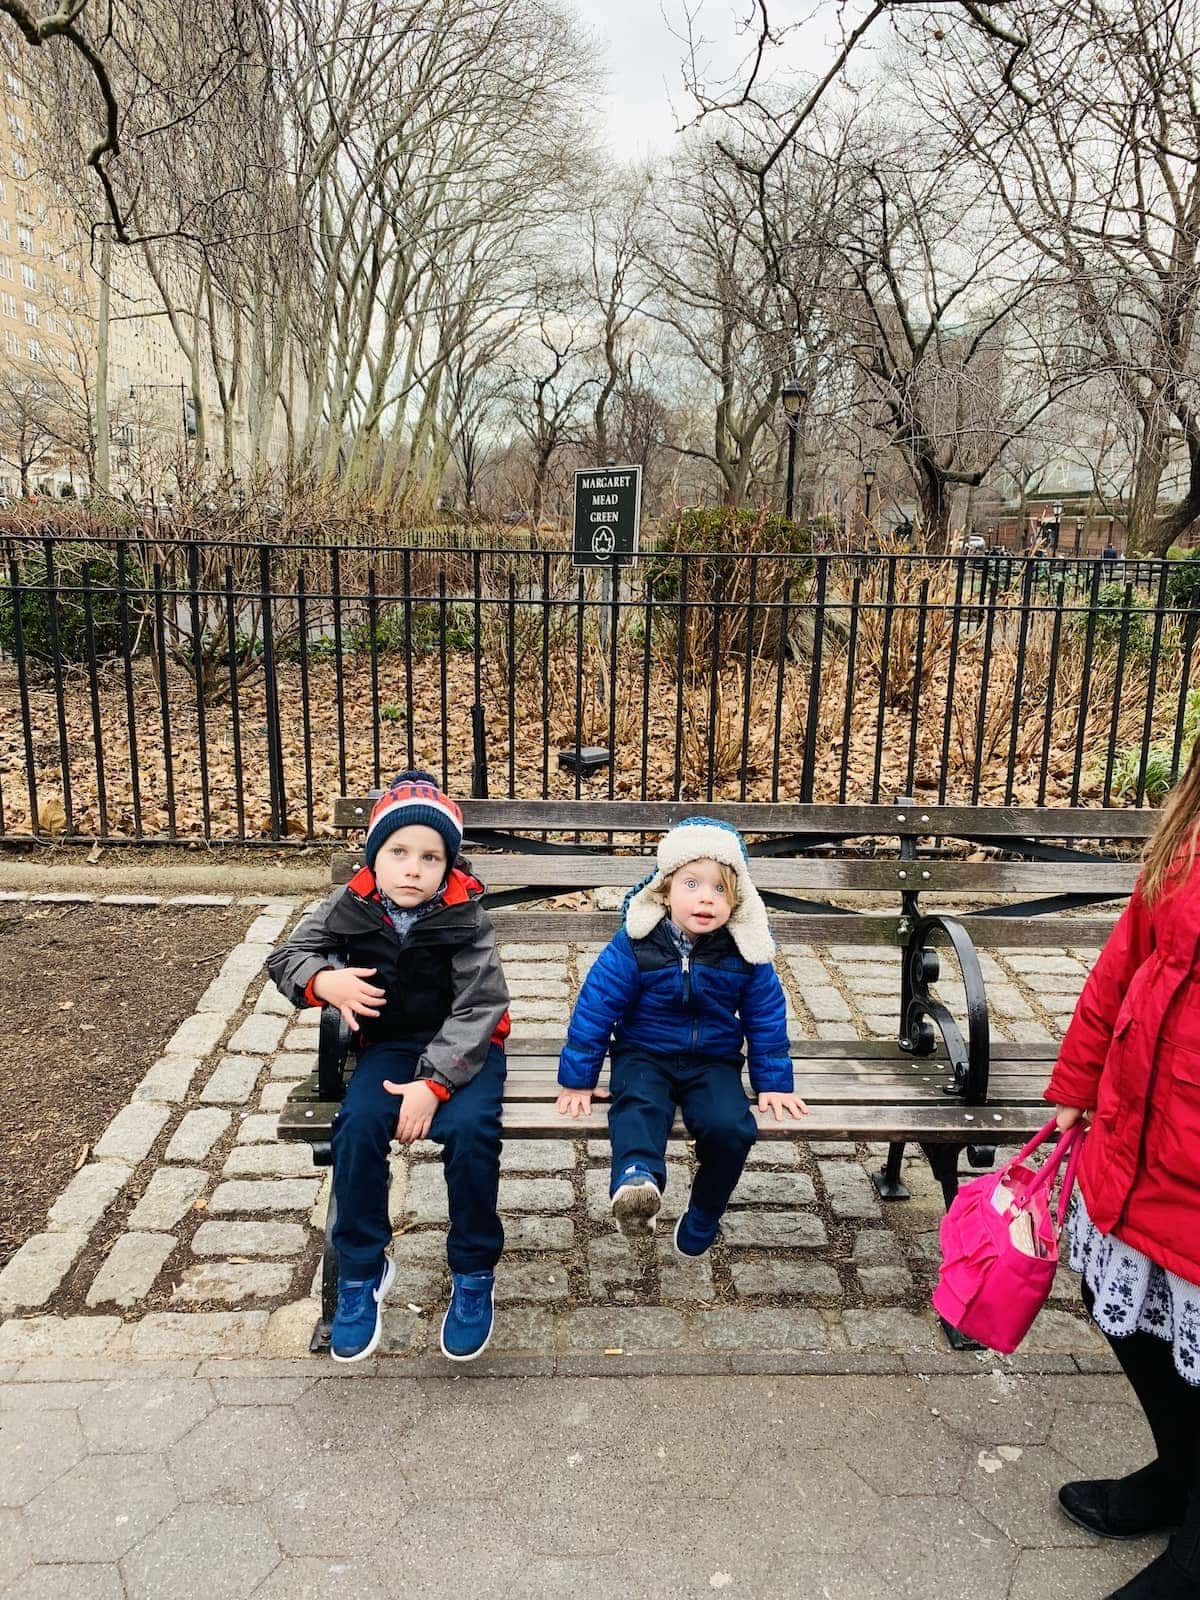 Blake and Eddie sitting on a bench